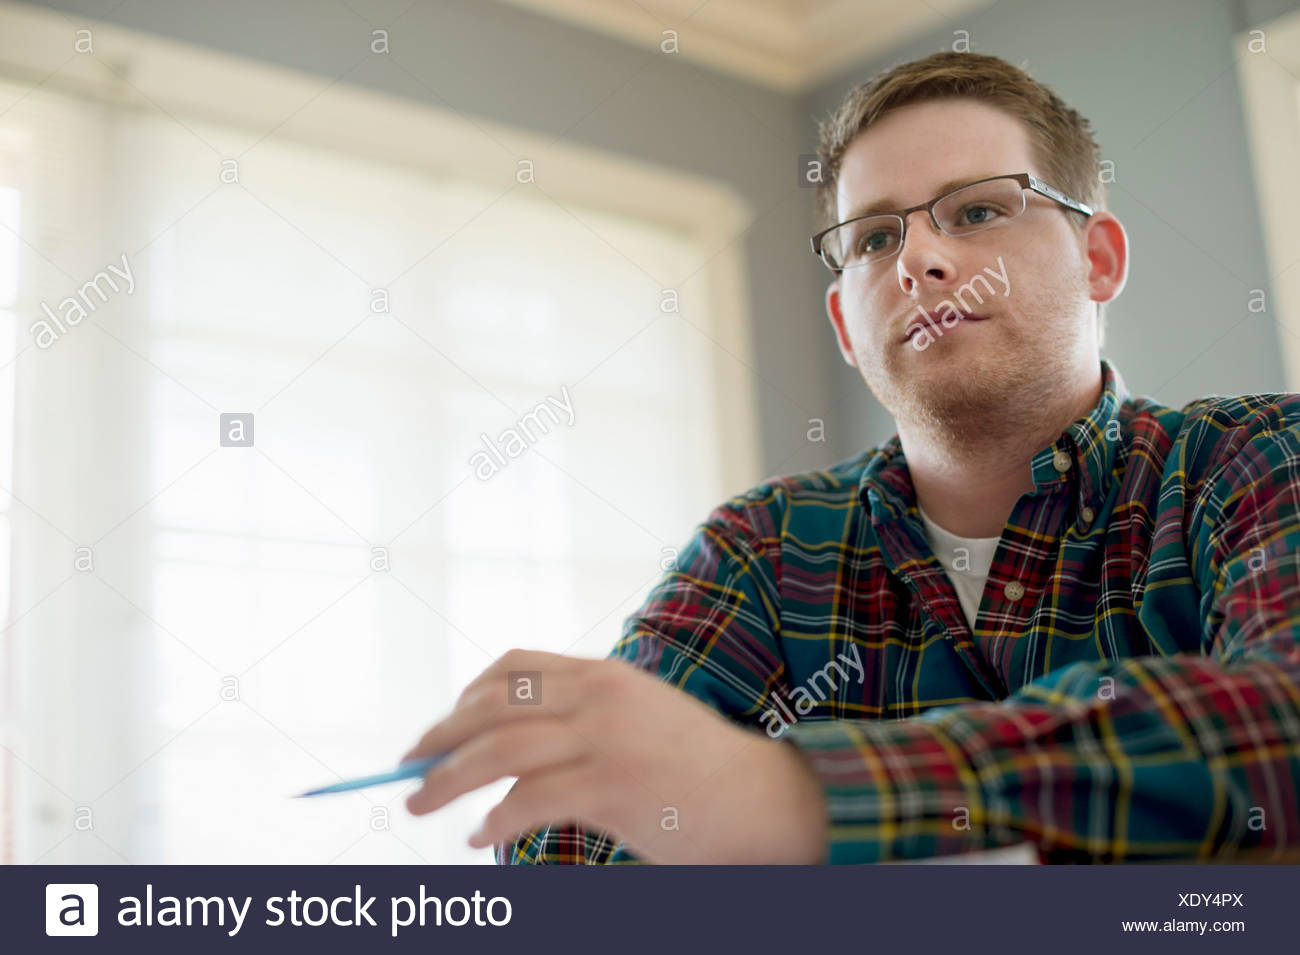 University student wearing glasses and checked shirt - Stock Image